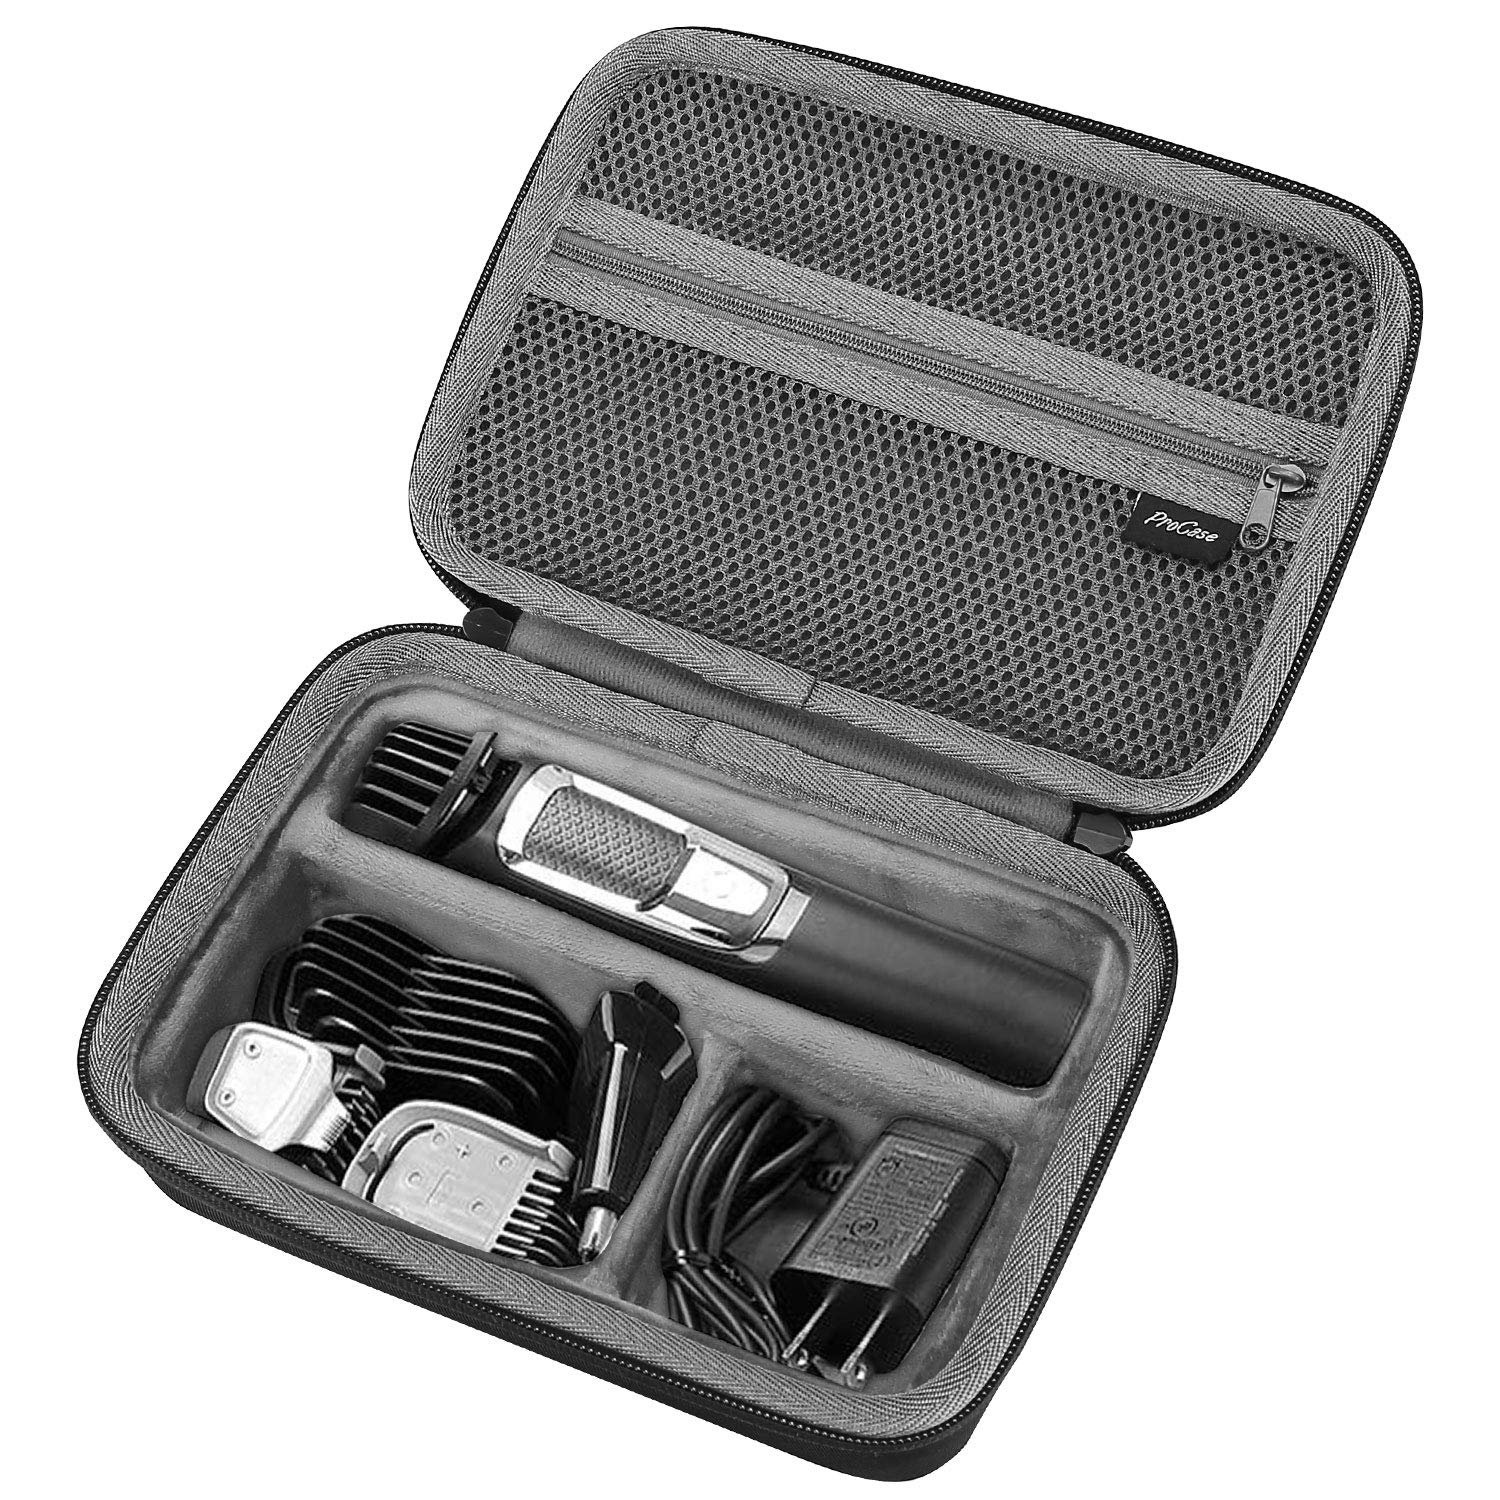 ProCase Hard Travel Case for Philips Norelco Multigroom Series 3000 5000 7000 MG3750 MG5750/49 MG7750/49 Men's Electric Trimmer Shaver and Attachments -Black